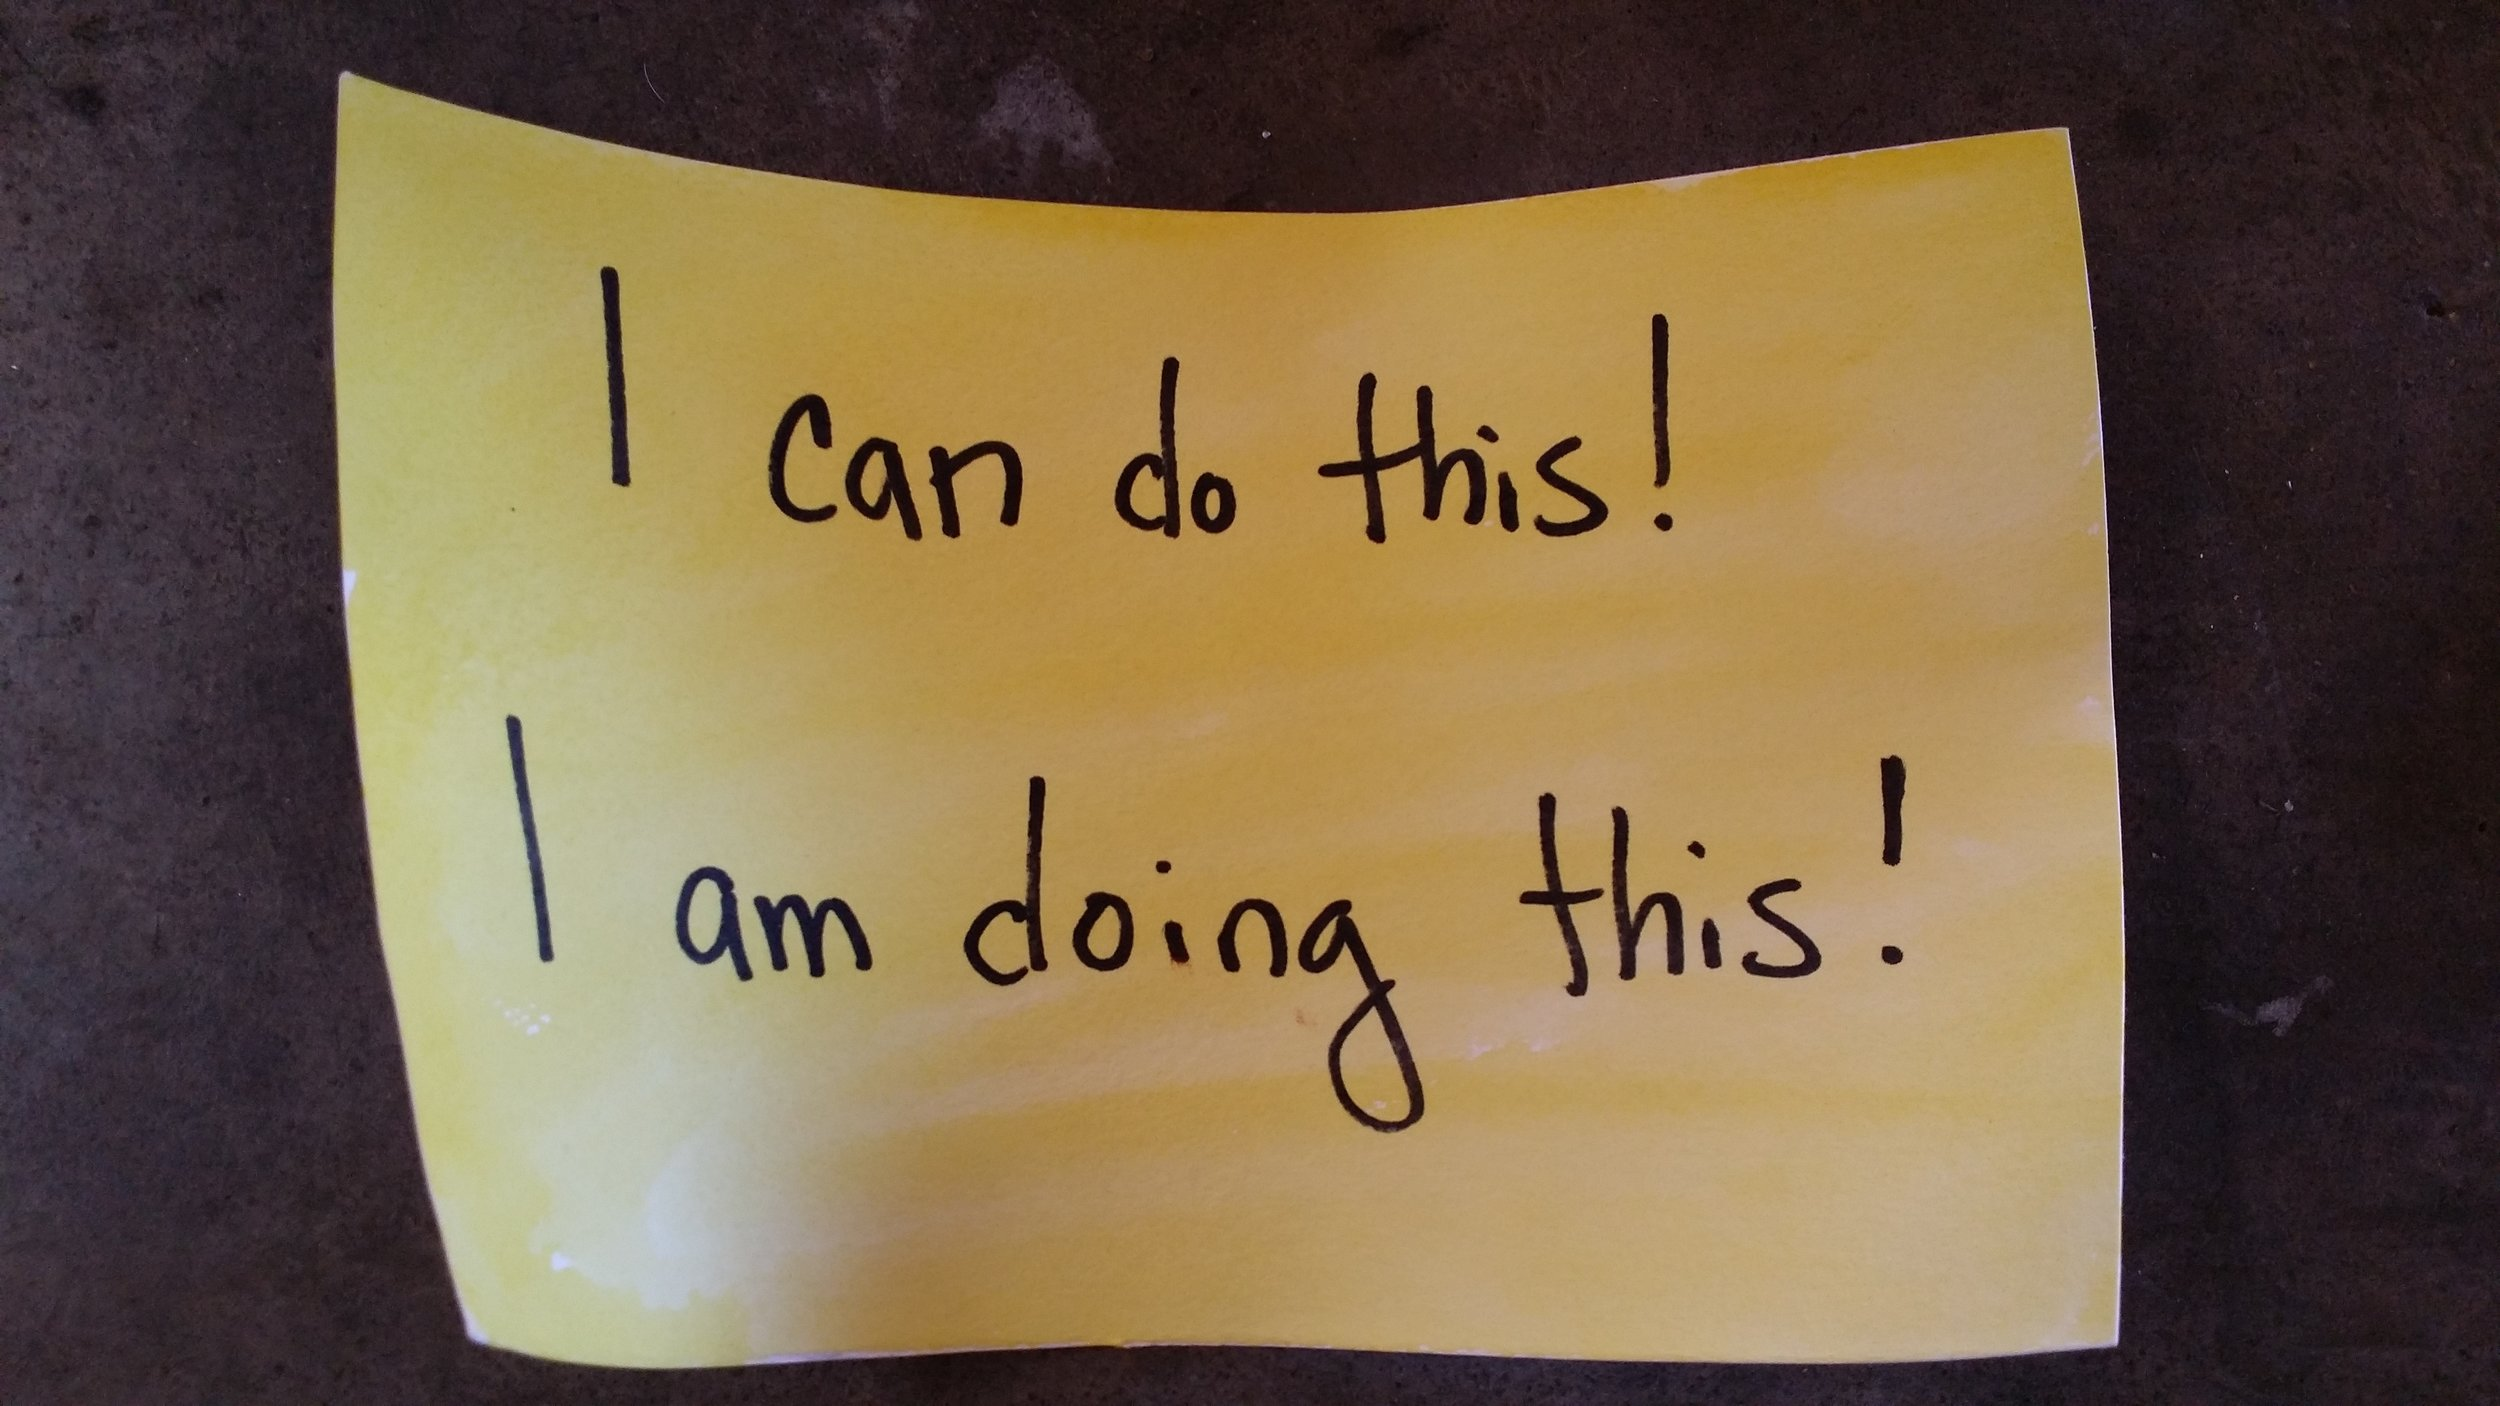 I can do this! I am doing this!